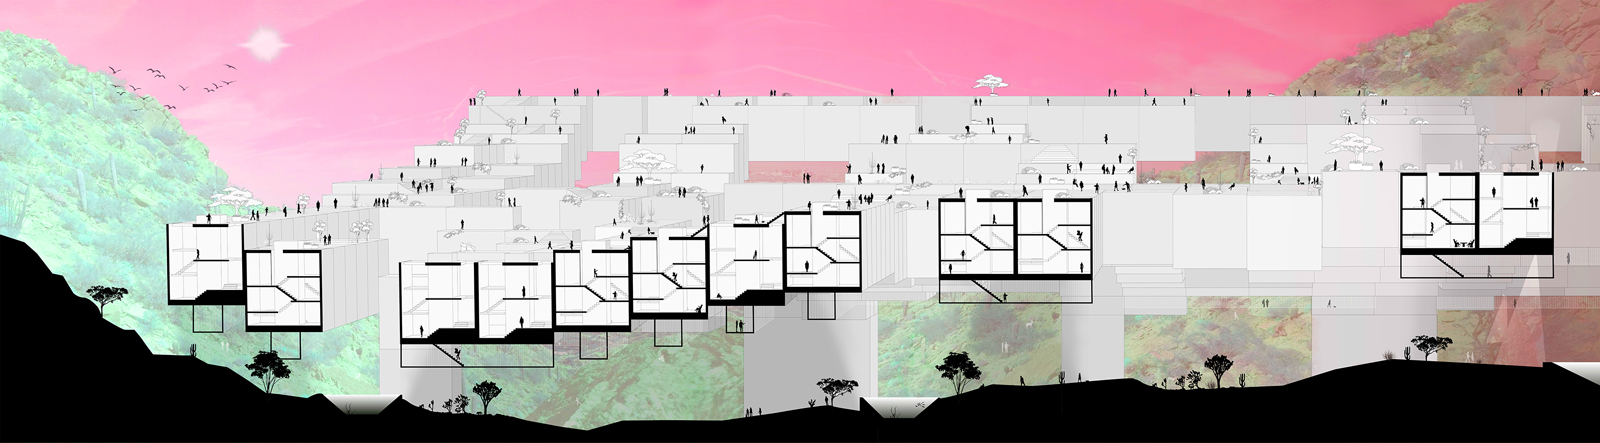 Section drawing of a community of lifted housing units that mirror the landscape below by student Evan Epperson